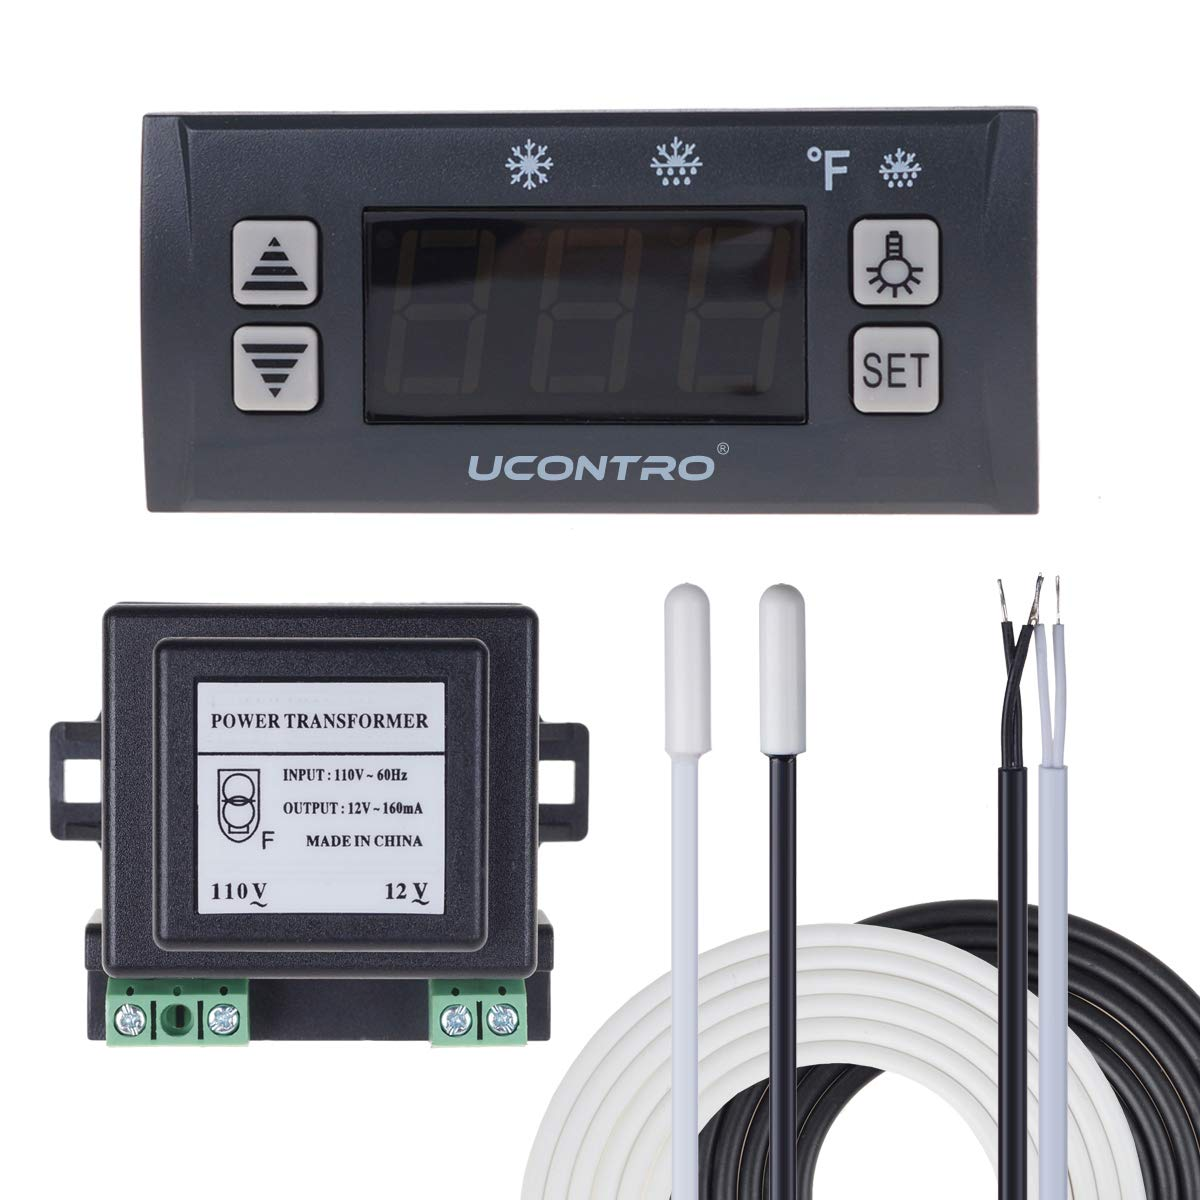 UCONTRO SF-102 Digital Temperature Controller Electronic Thermostat -40 to 120℉ -45 to 45℃ Switchable with Defrost & Alarm, 2 Sensor Probes for Refrigerators & Freezers Defrosting (Set Version)